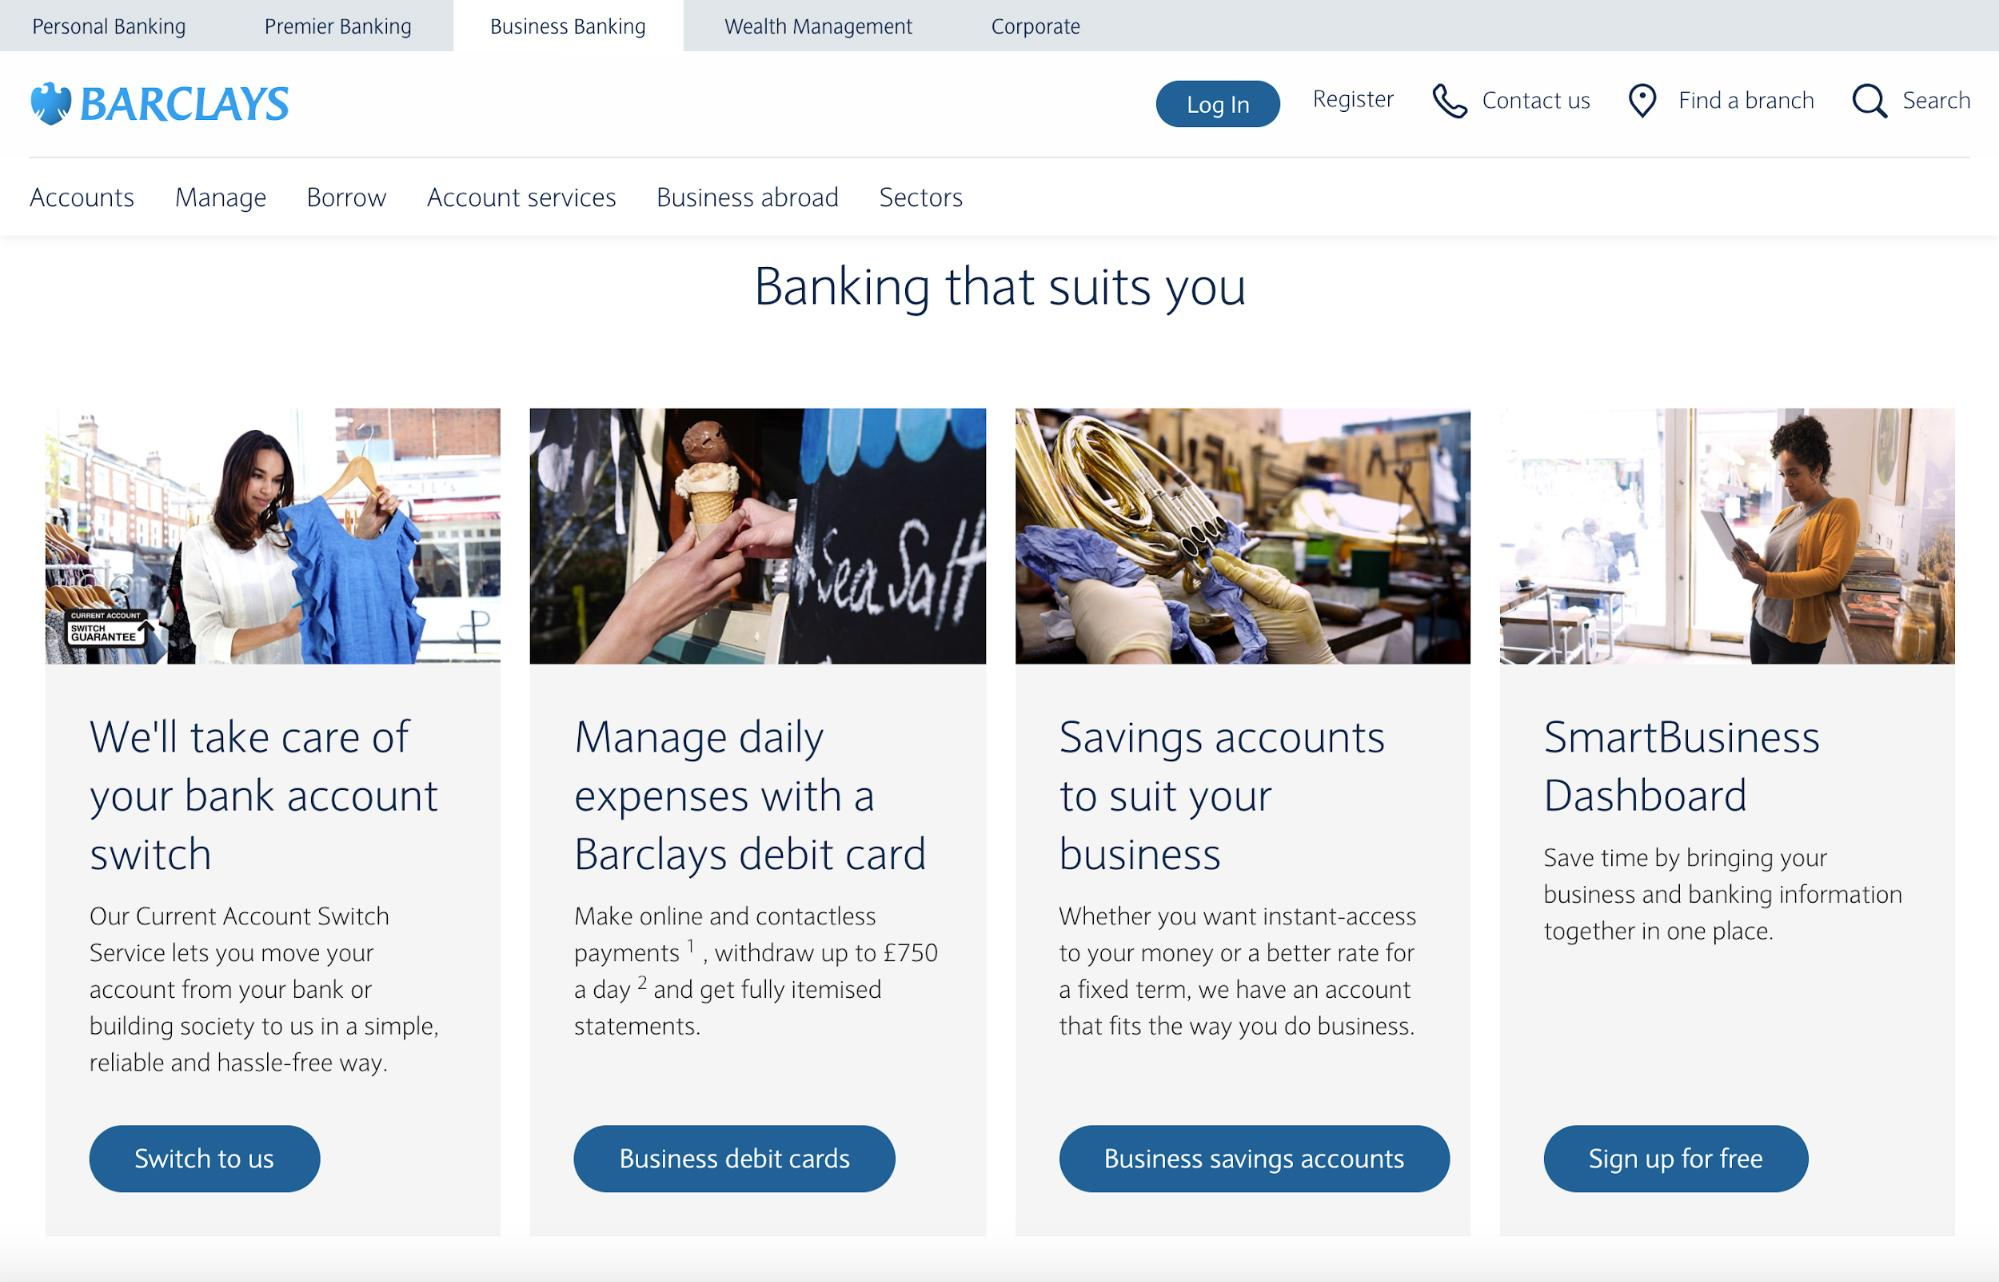 Barclays uses a very specific website color scheme.